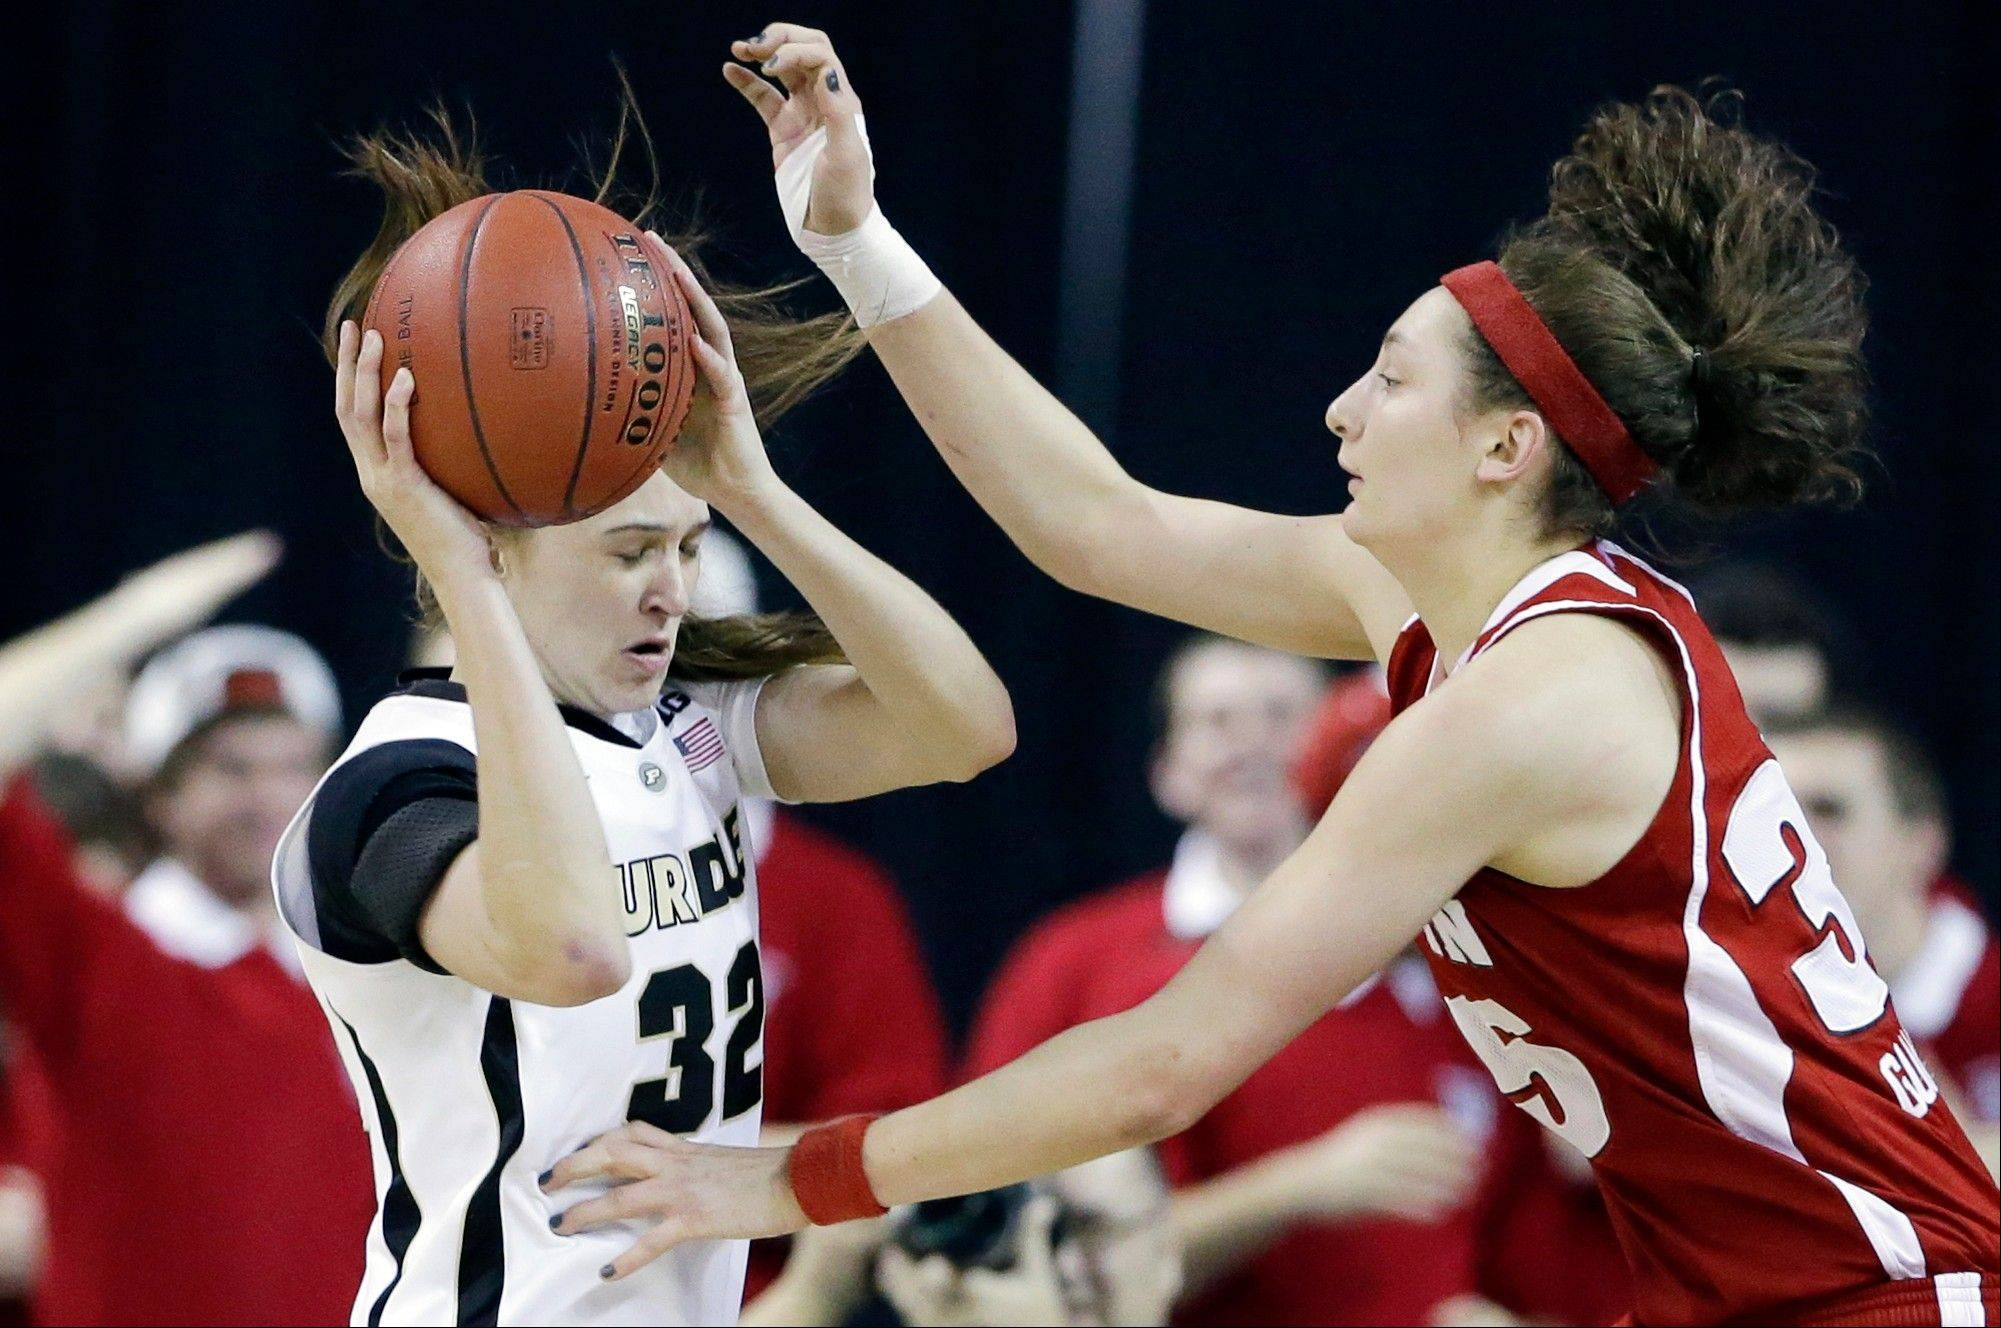 Purdue forward Sam Ostarello, left, looks to a pass as Wisconsin forward Jacki Gulczynski defends during the first half of an NCAA college basketball game in the Big Ten Conference tournament in Hoffman Estates, Ill., on Friday, March 8, 2013. Purdue won 74-62.